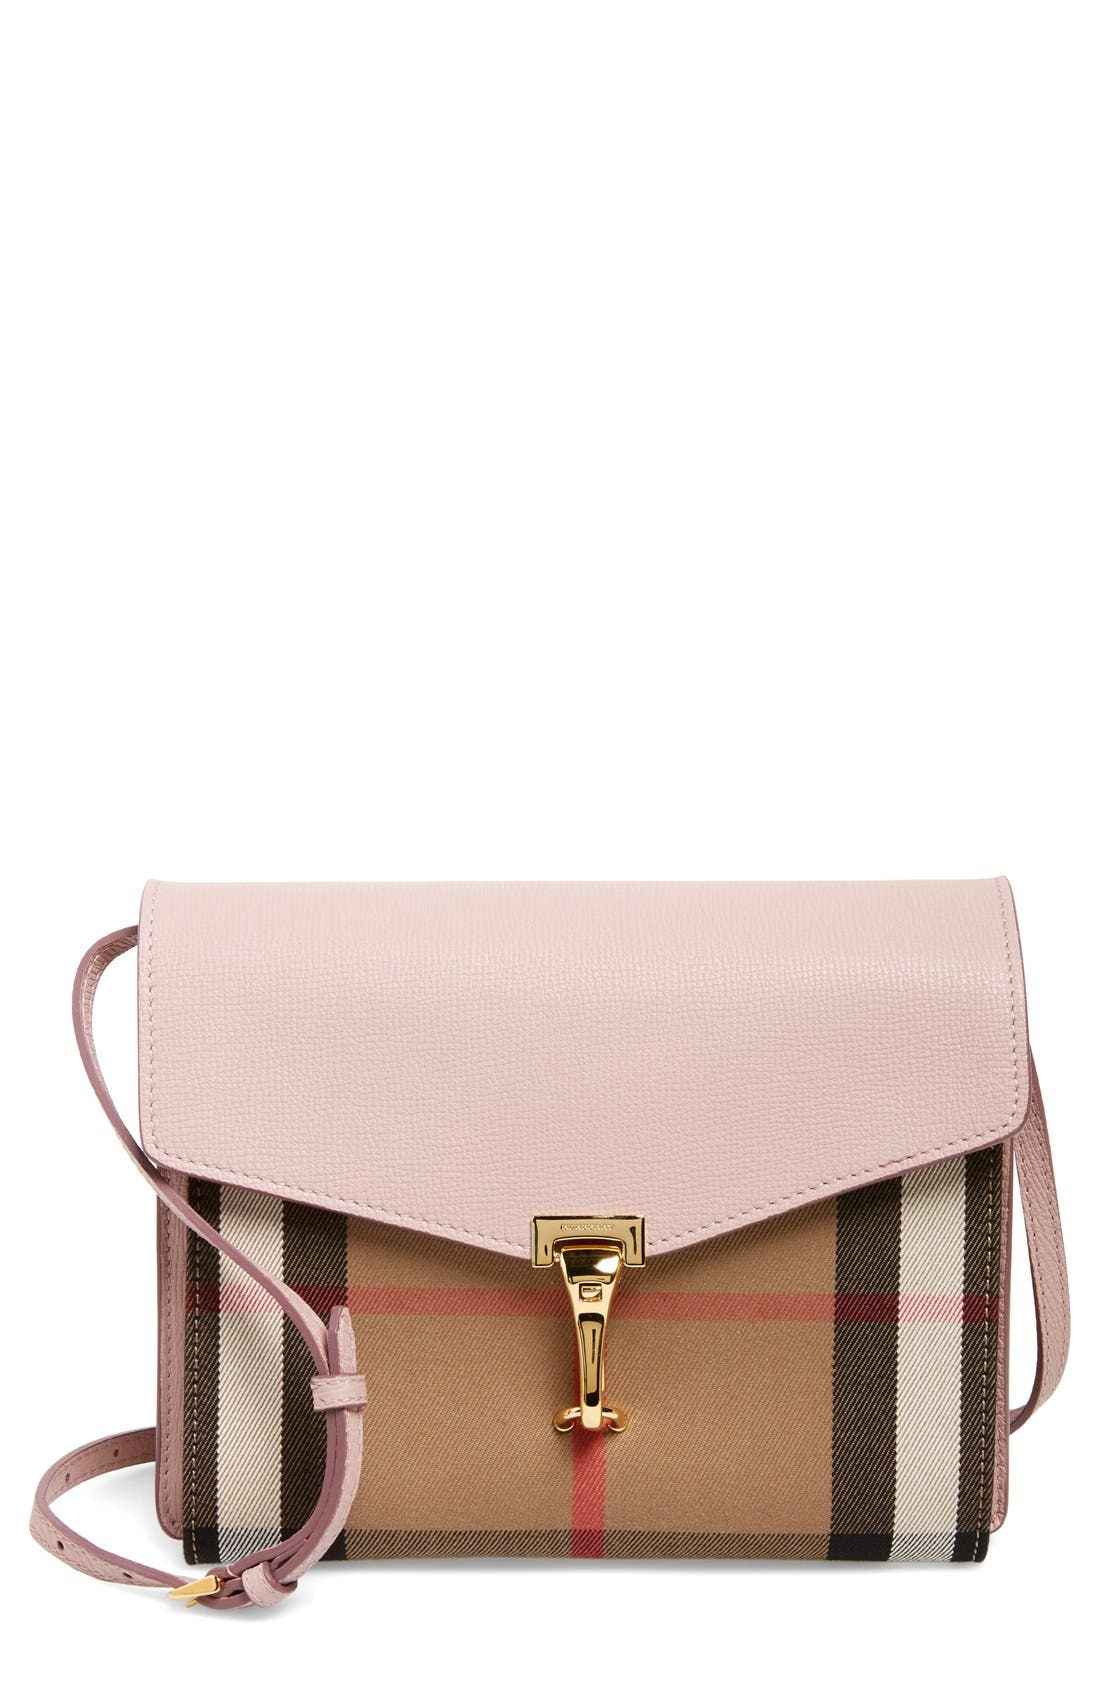 'Small Macken' Check Crossbody Bag,                             Main thumbnail 1, color,